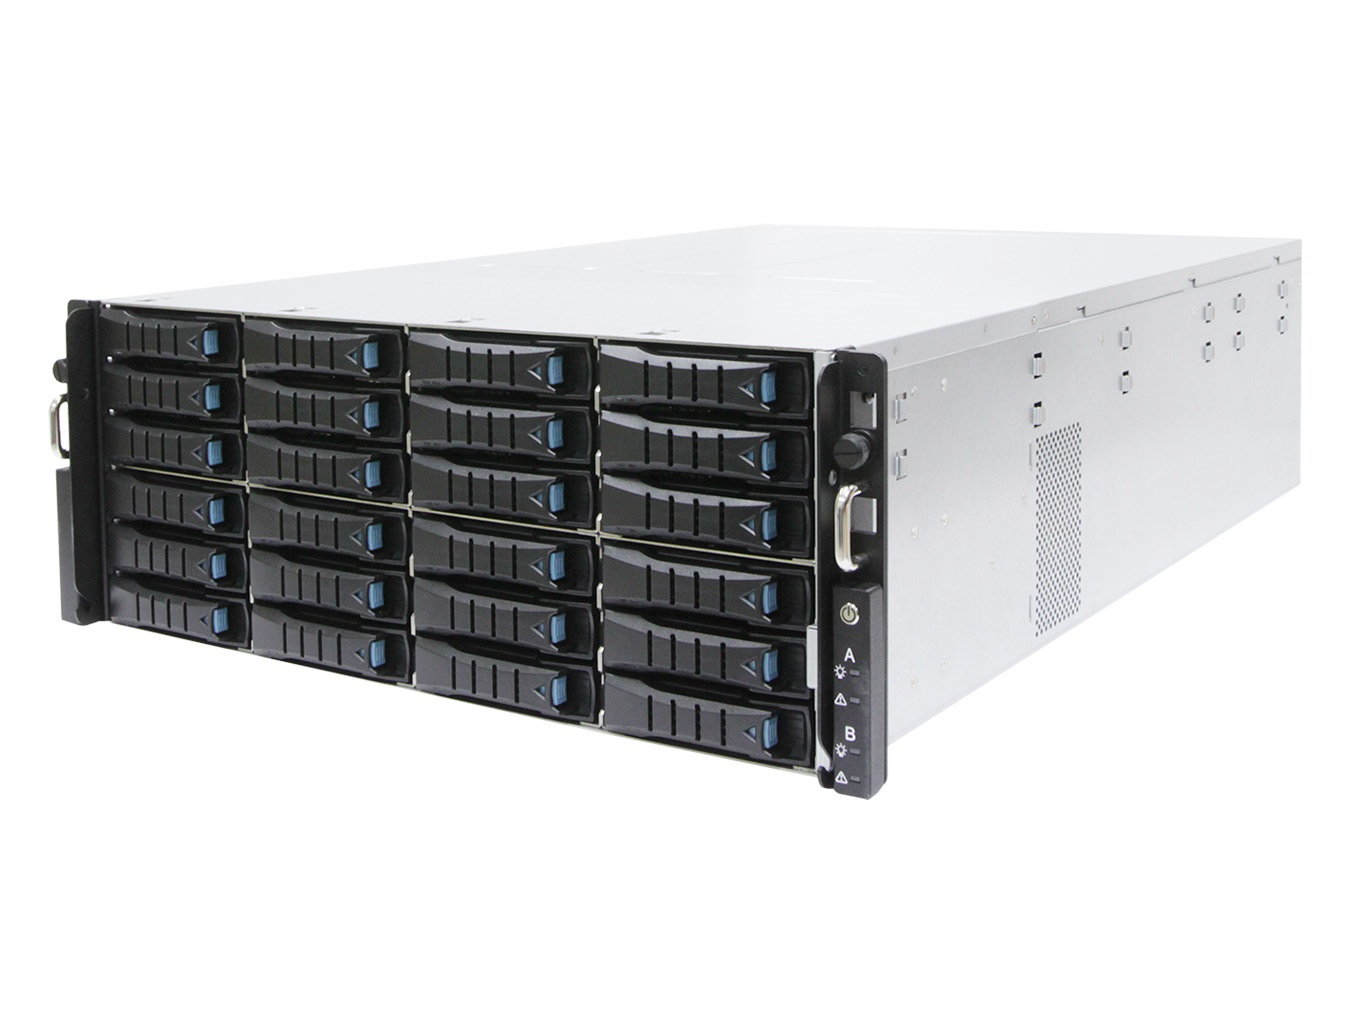 AIC HA401-LB XP1-A401LB02 4U 24-Bay Storage Server